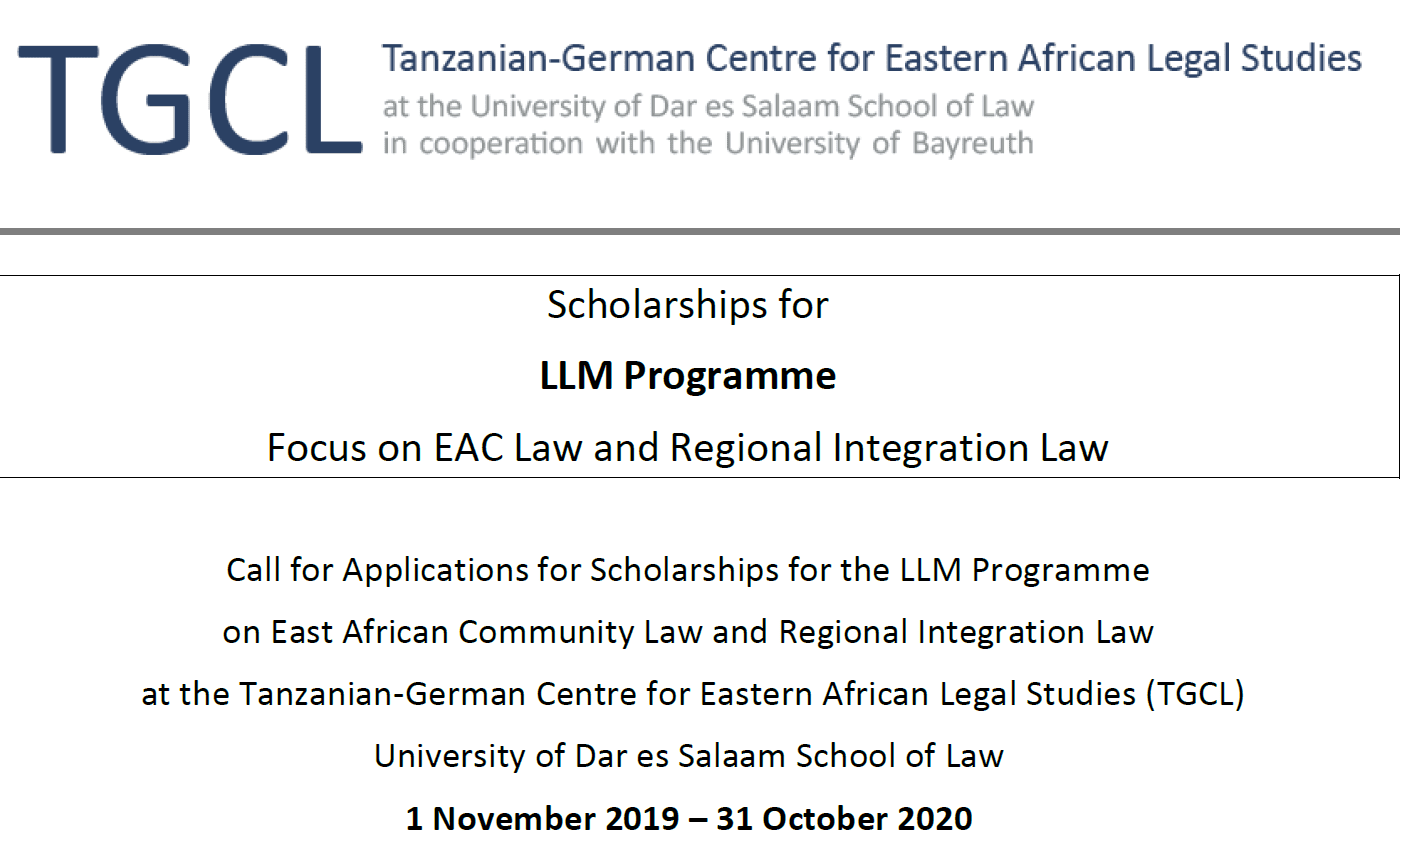 Tanzanian-German Centre for Eastern African Legal Research (LLM) Scholarships 2019/2020 for East African Attorneys (Moneyed)